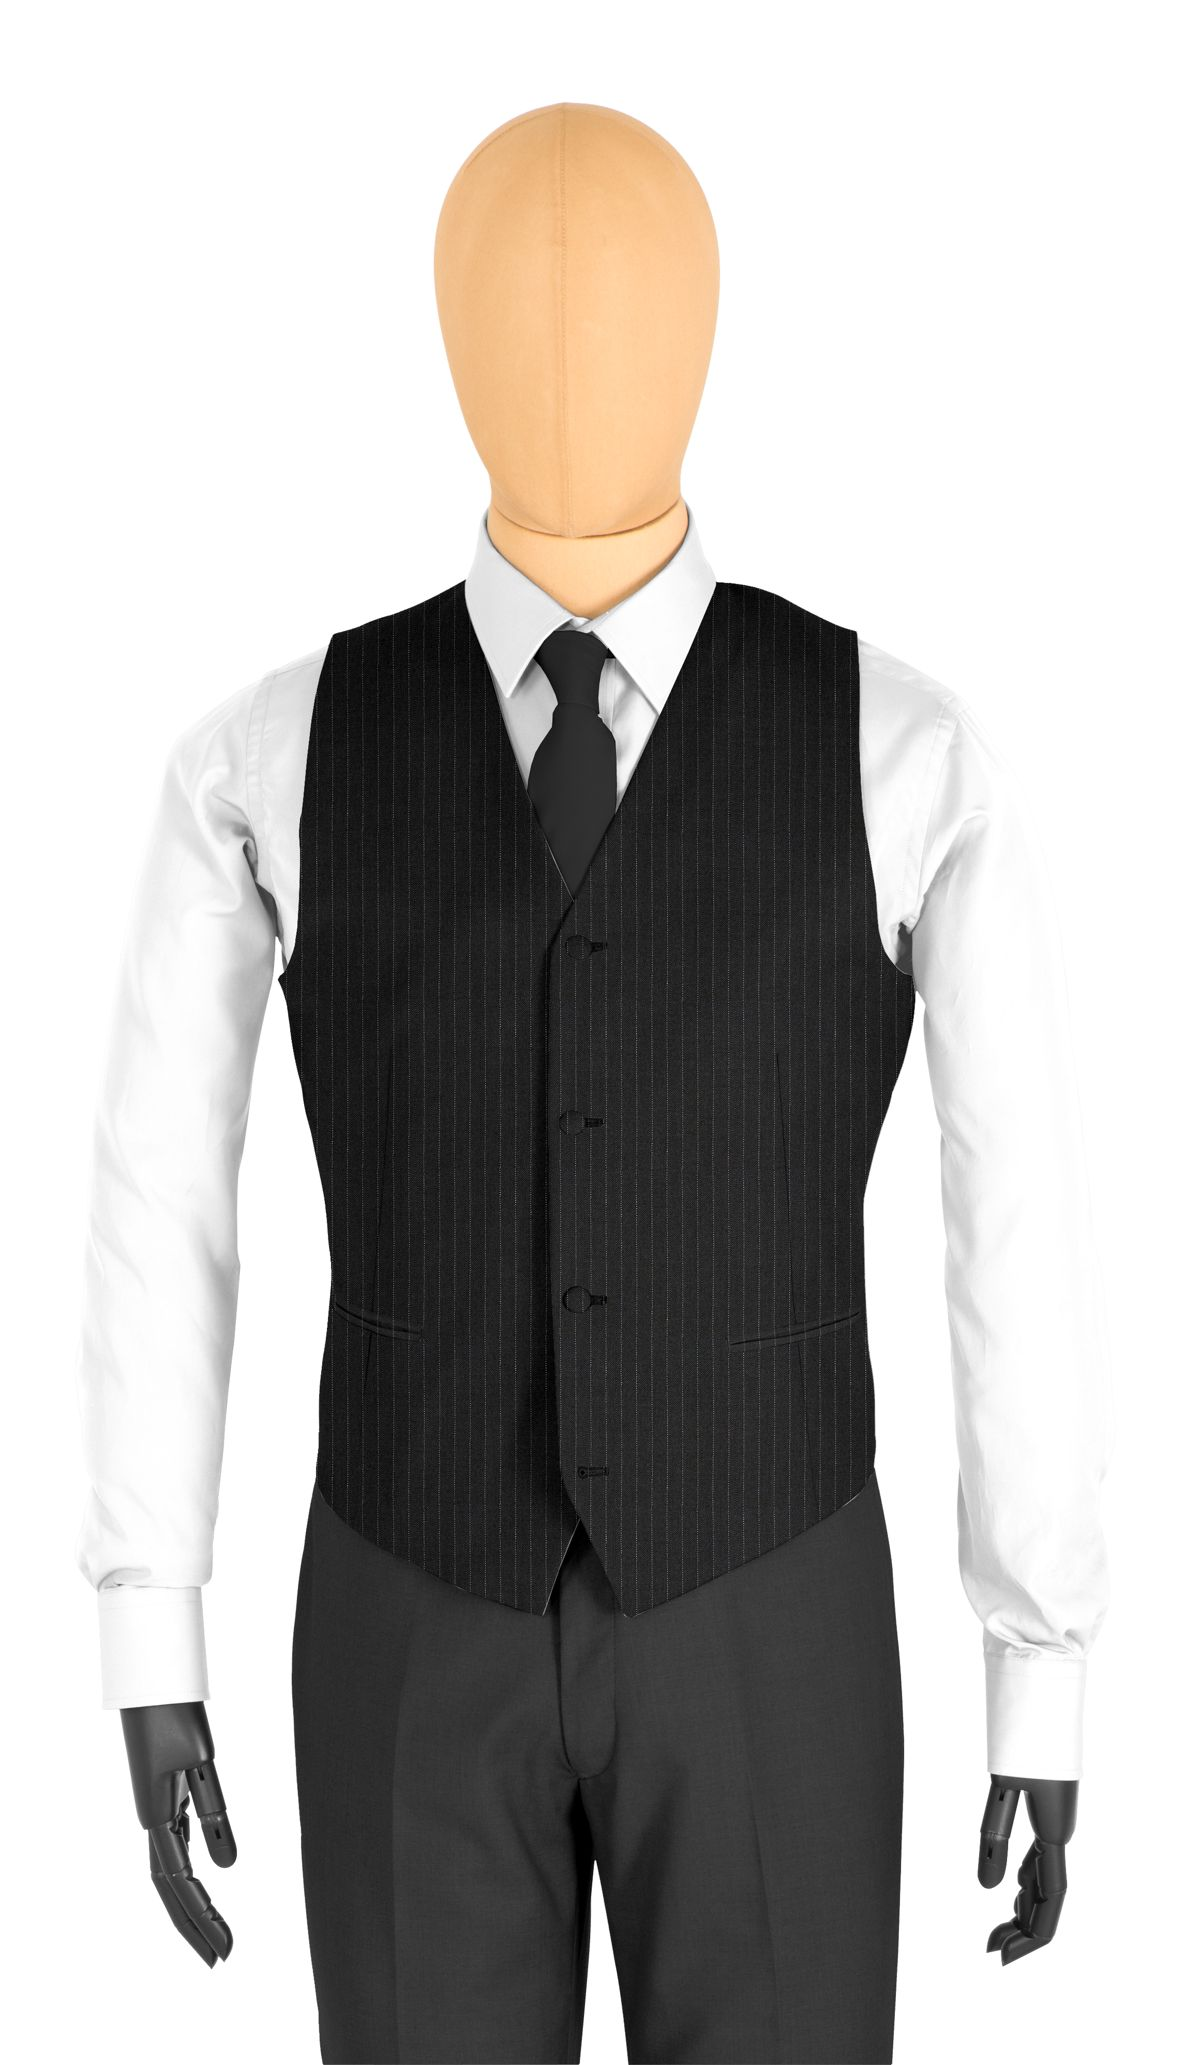 Gilet coupe 4 boutons noir rayures simples